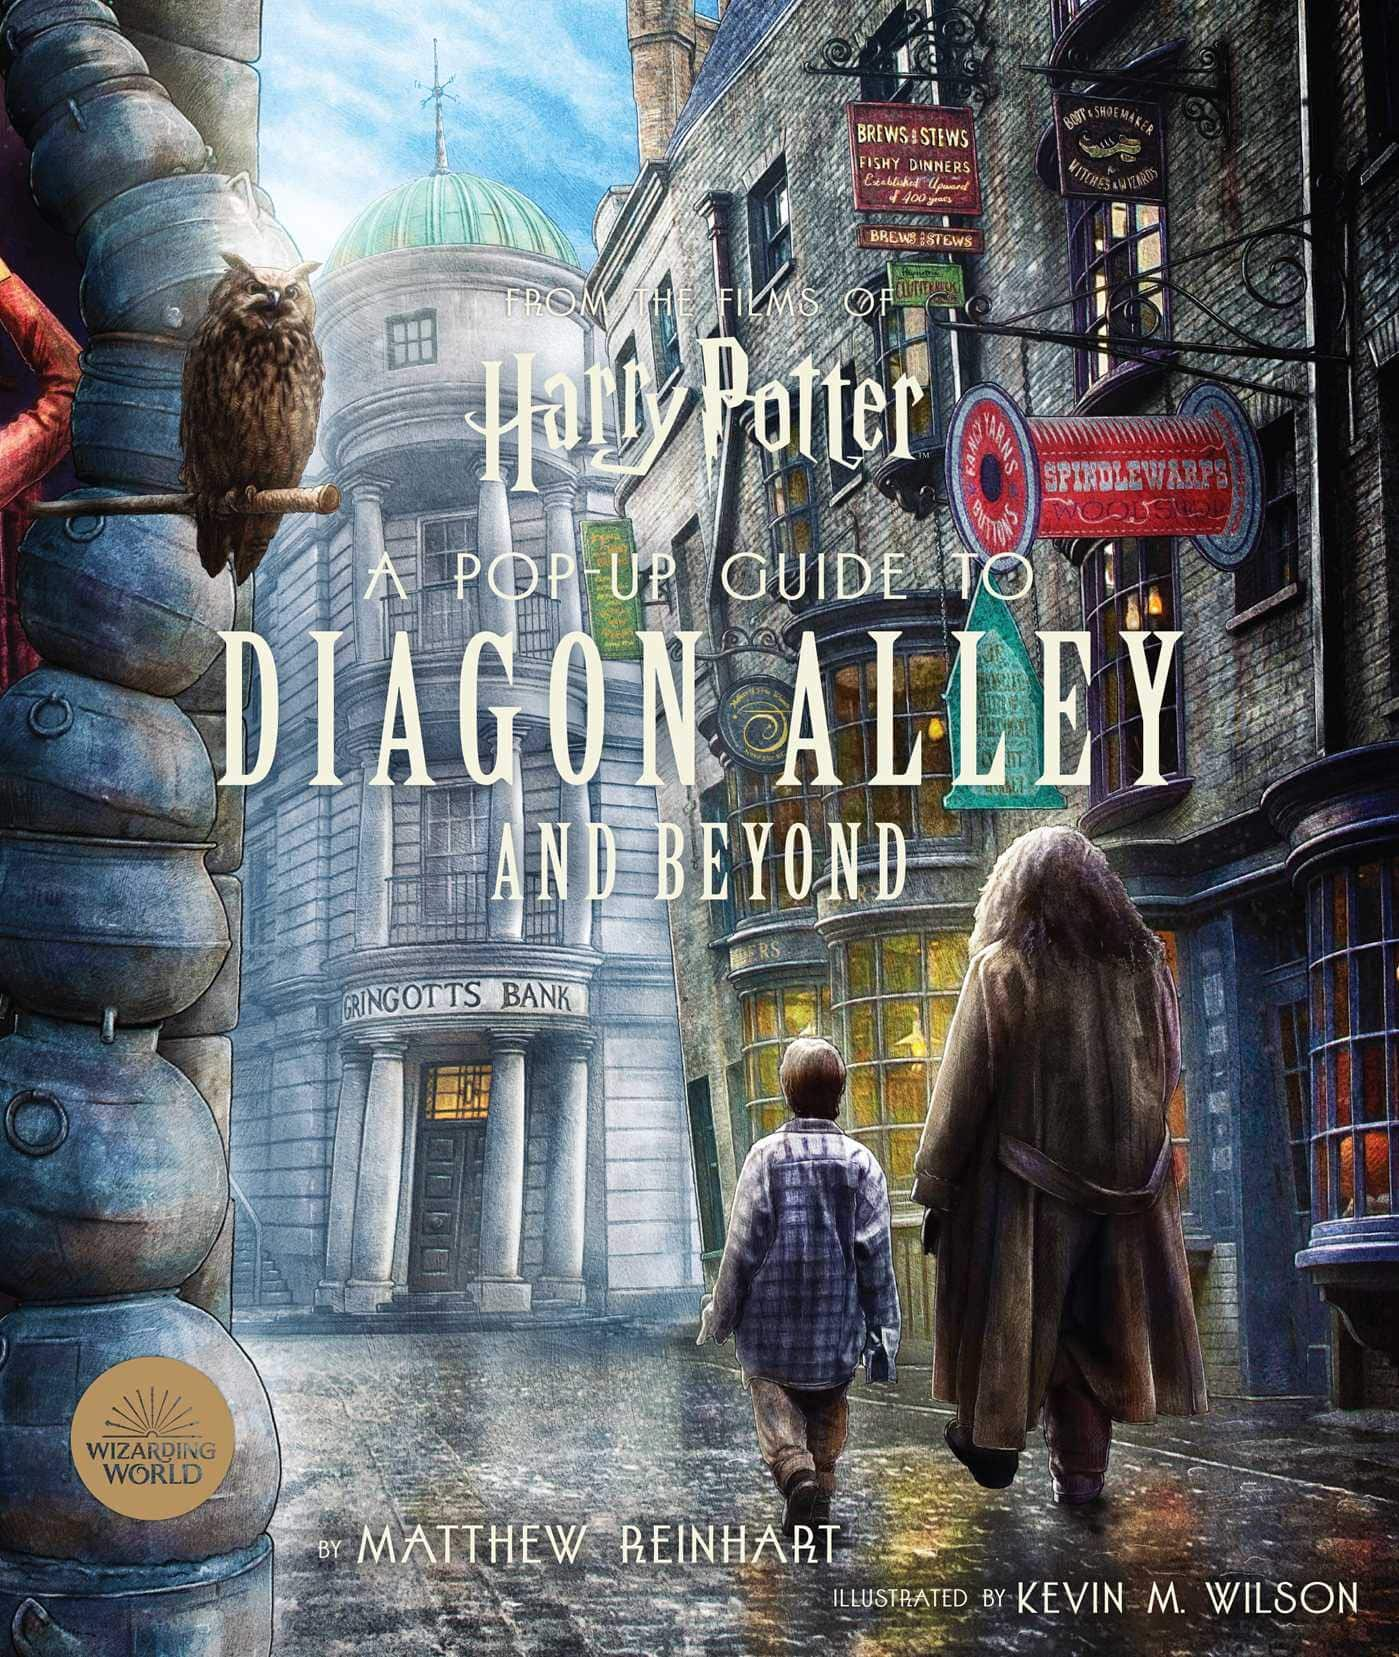 Harry Potter: A Pop-Up Guide to Diagon Alley & Beyond Hardcover Book